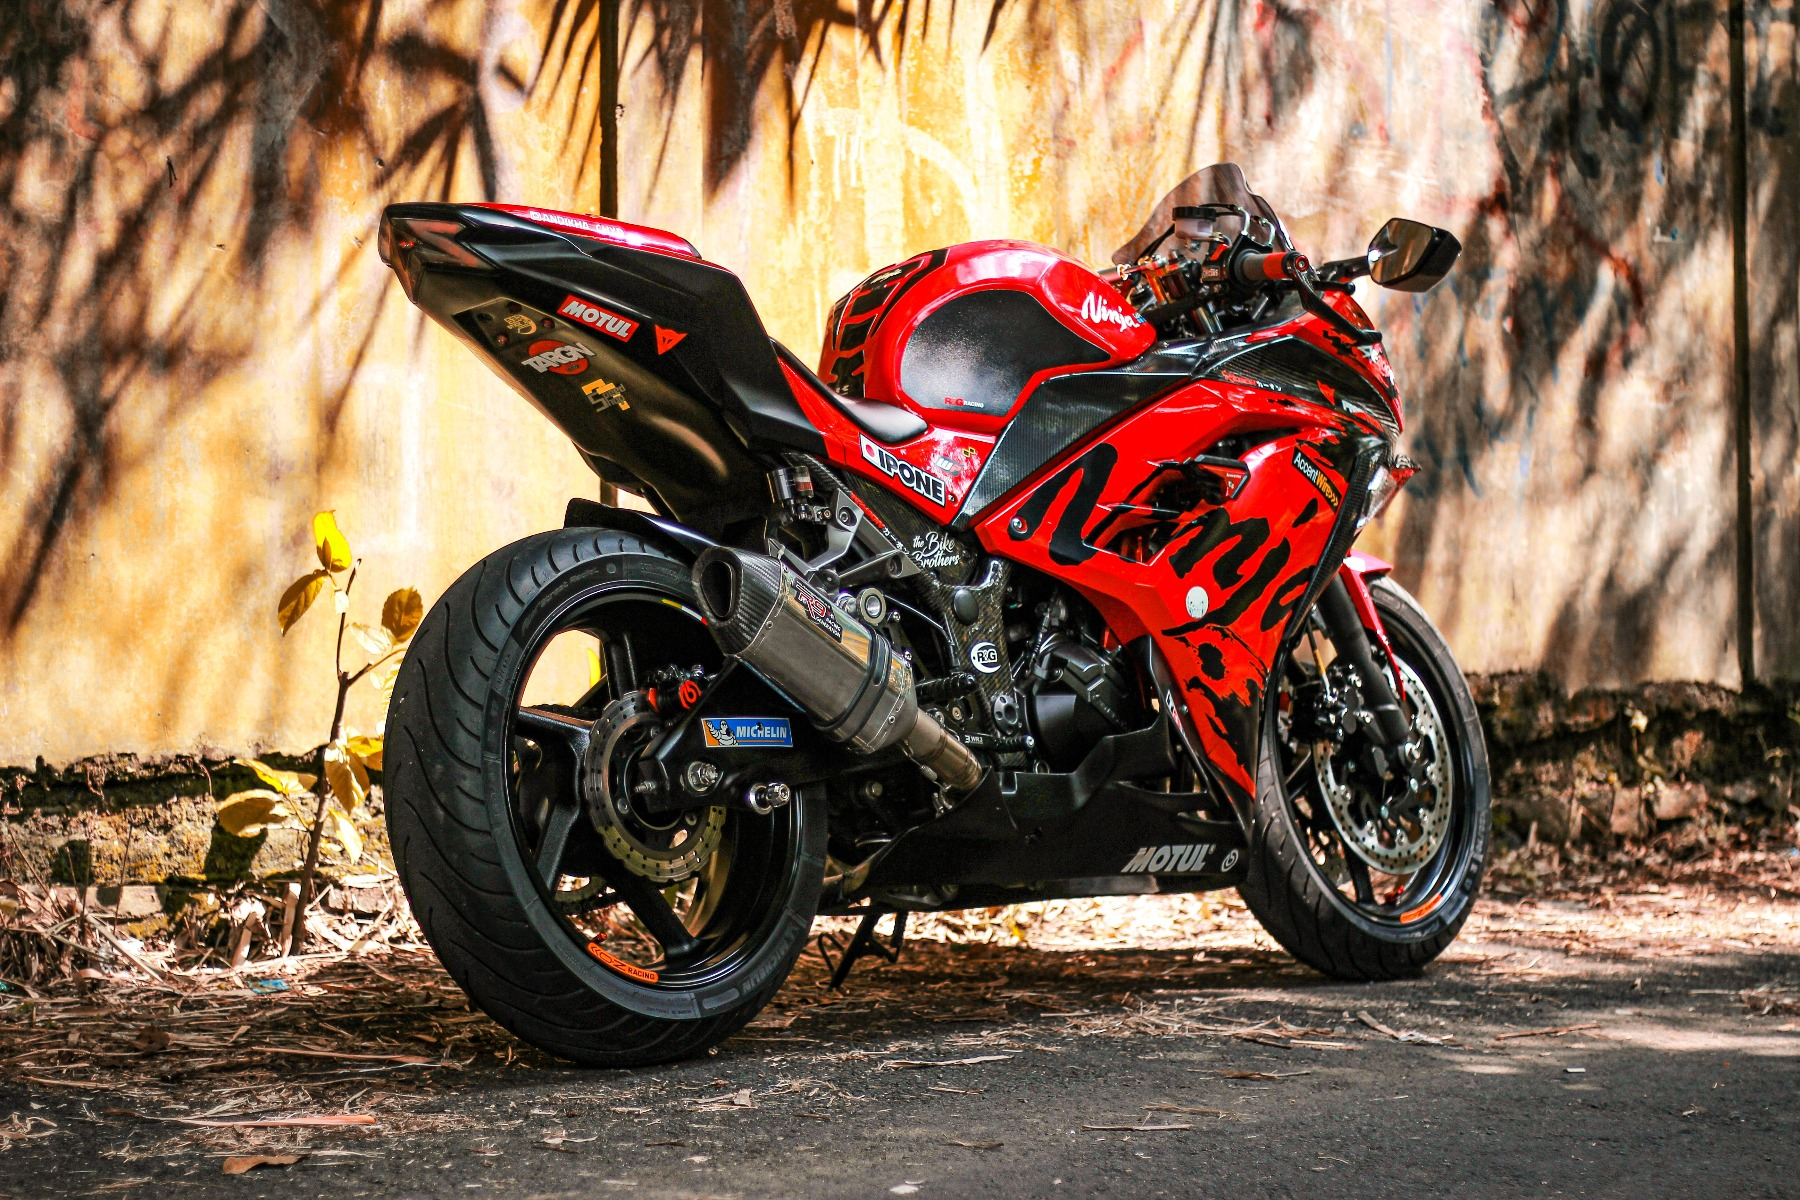 A red and black motorcycle is parked at the side of a building in the sunlight